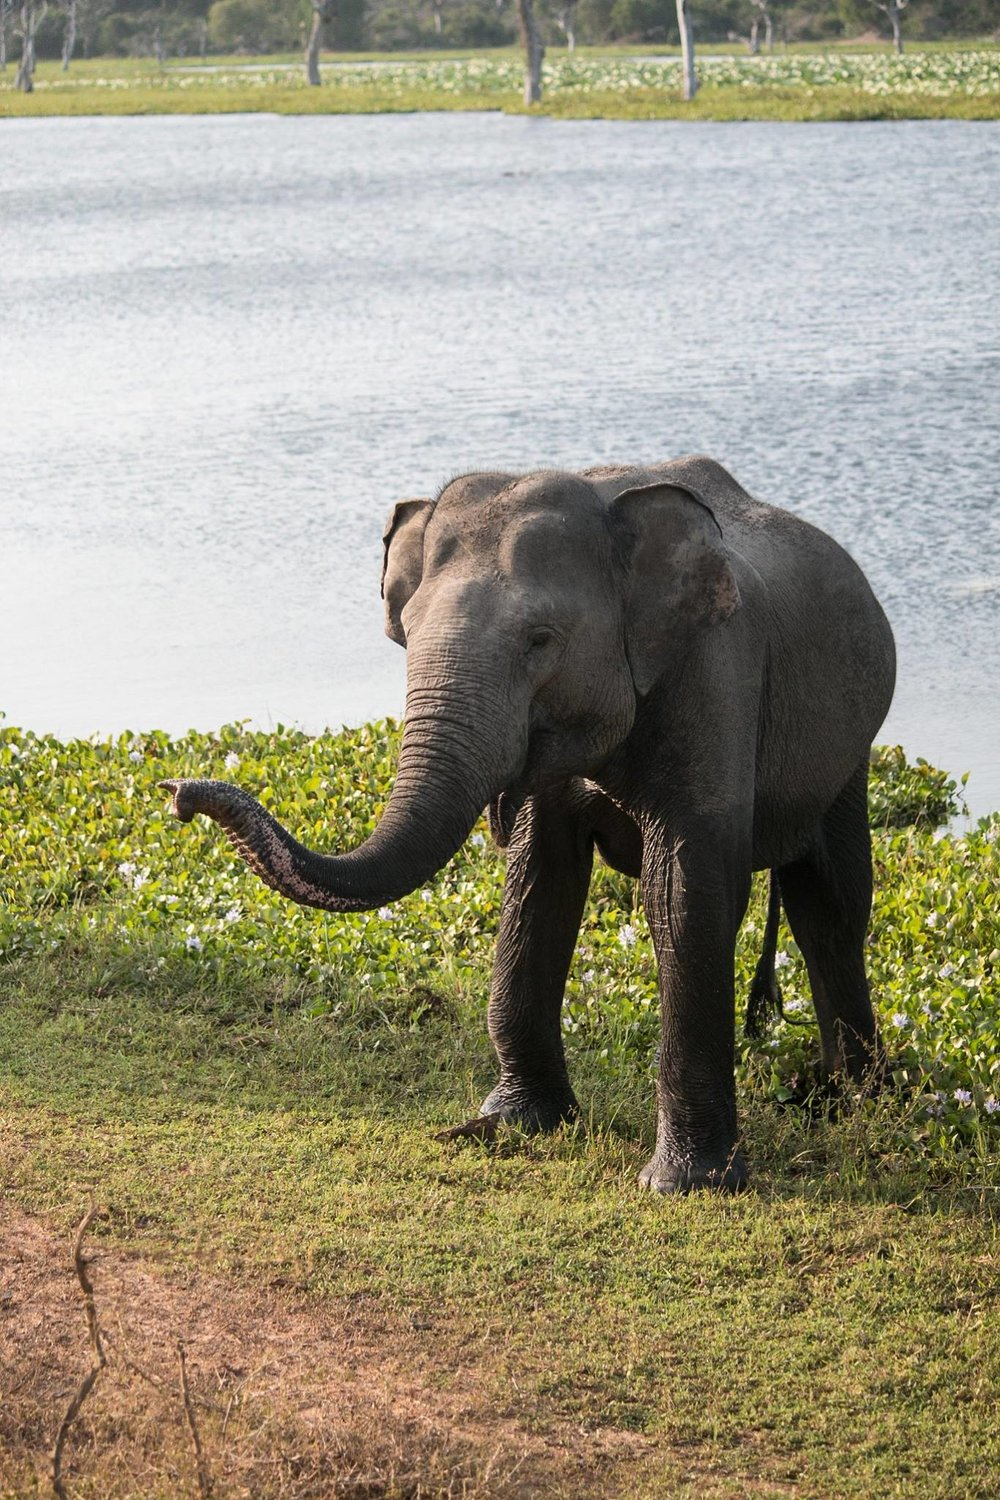 invite-to-paradise-sri-lanka-and-maldives-specialists-travel-agent-tour-operator-customer-review--feedback-joel-rhian-elephant-8.jpg